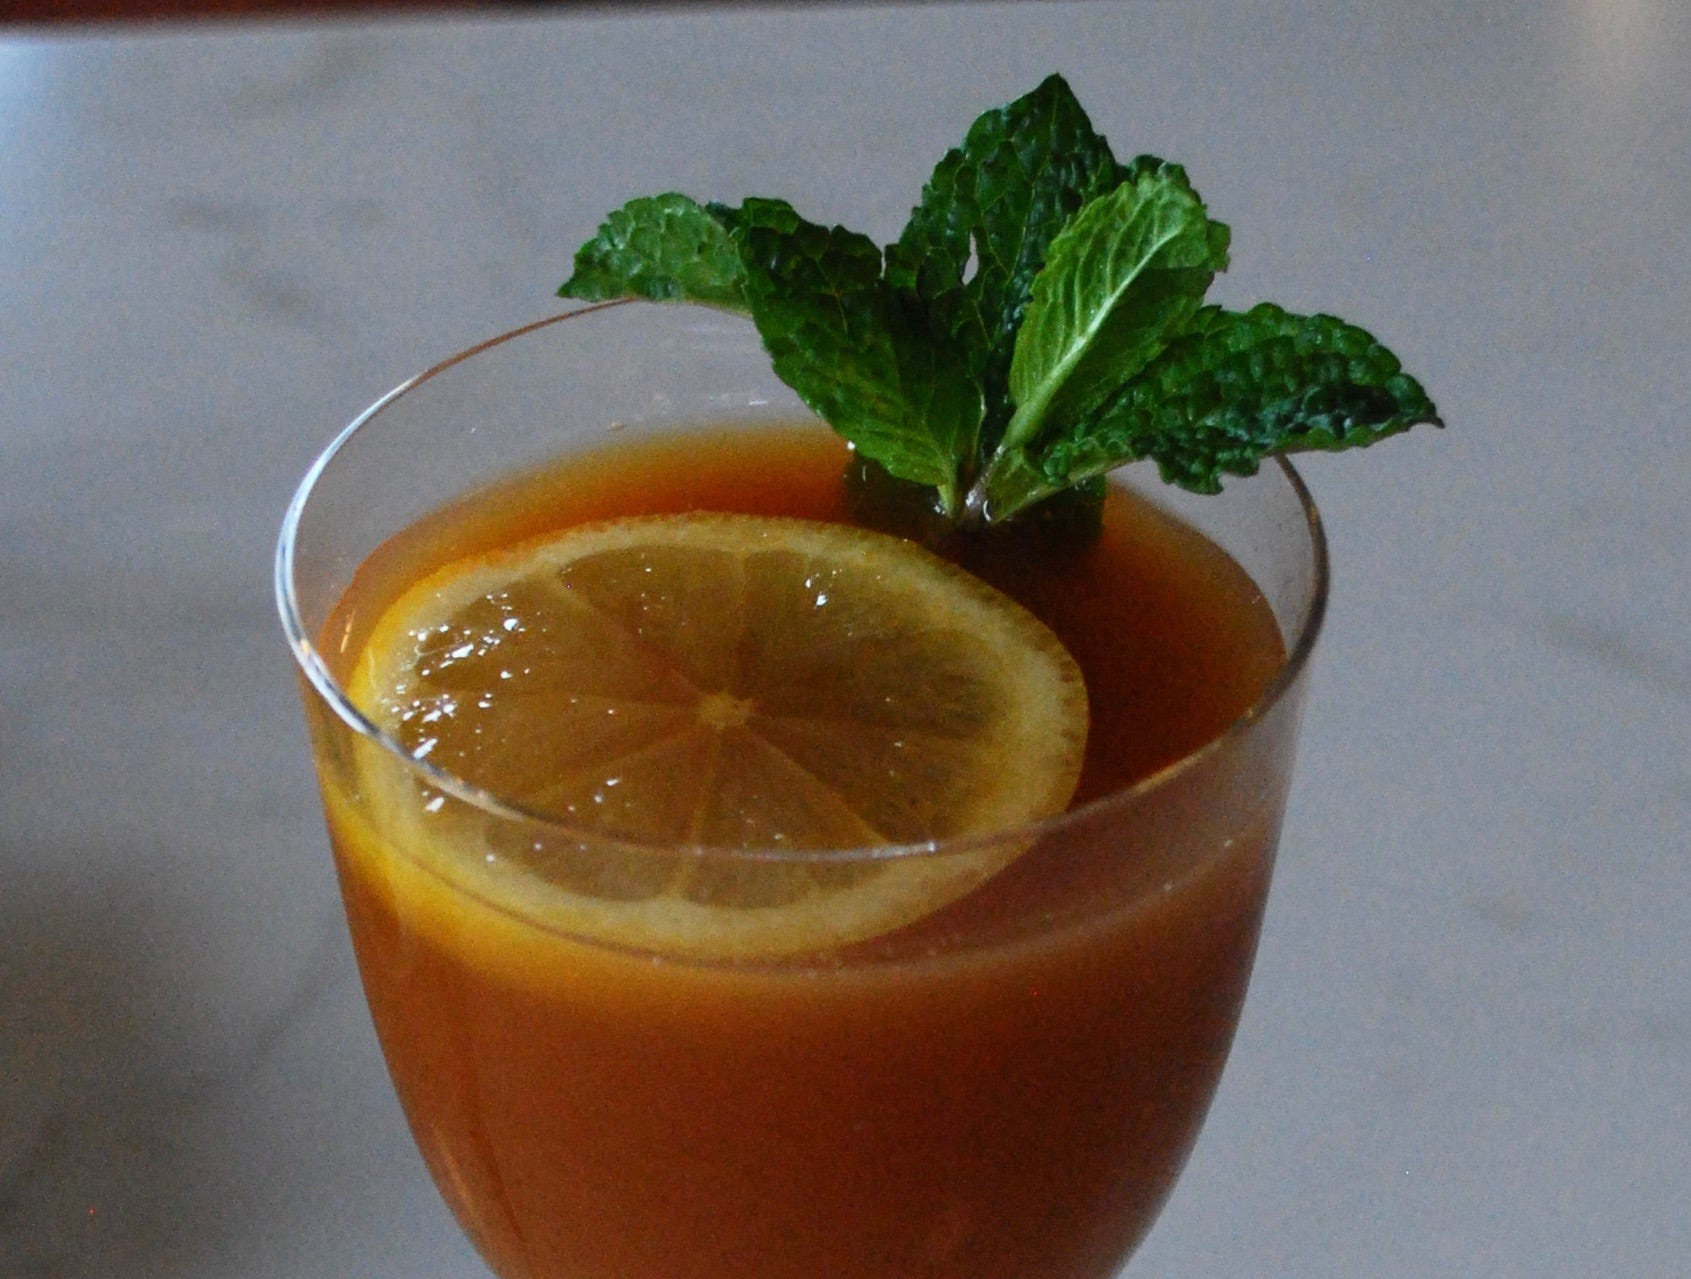 Tailor's Tea Punch is a blend of orange, pineapple and lemon juices, chai and sweet teas and fresh mint. It also can be spiked with bourbon.